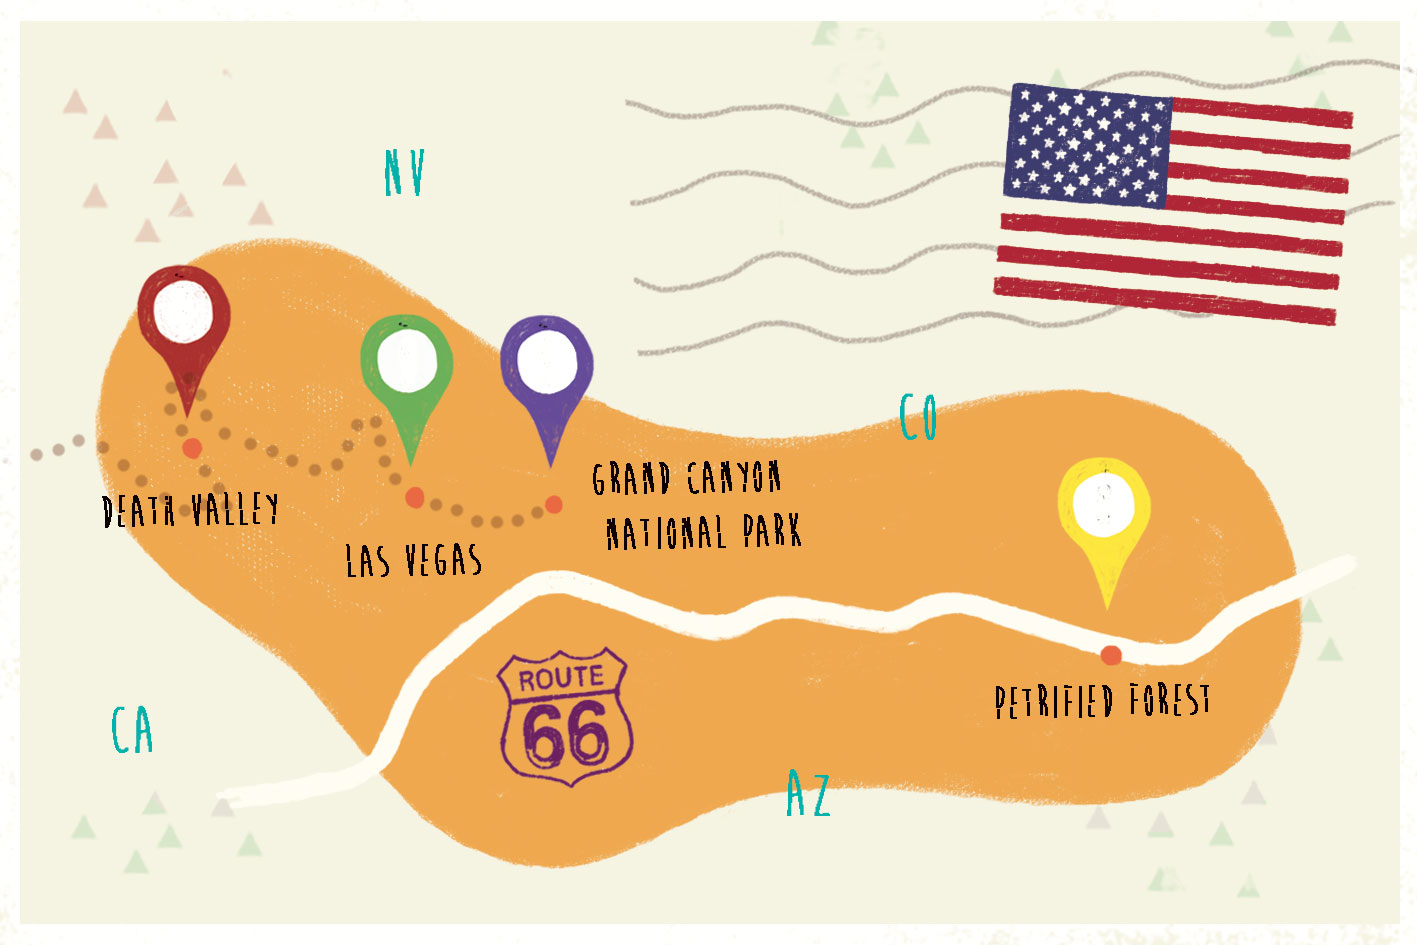 Appunti di viaggio: gli USA on the road